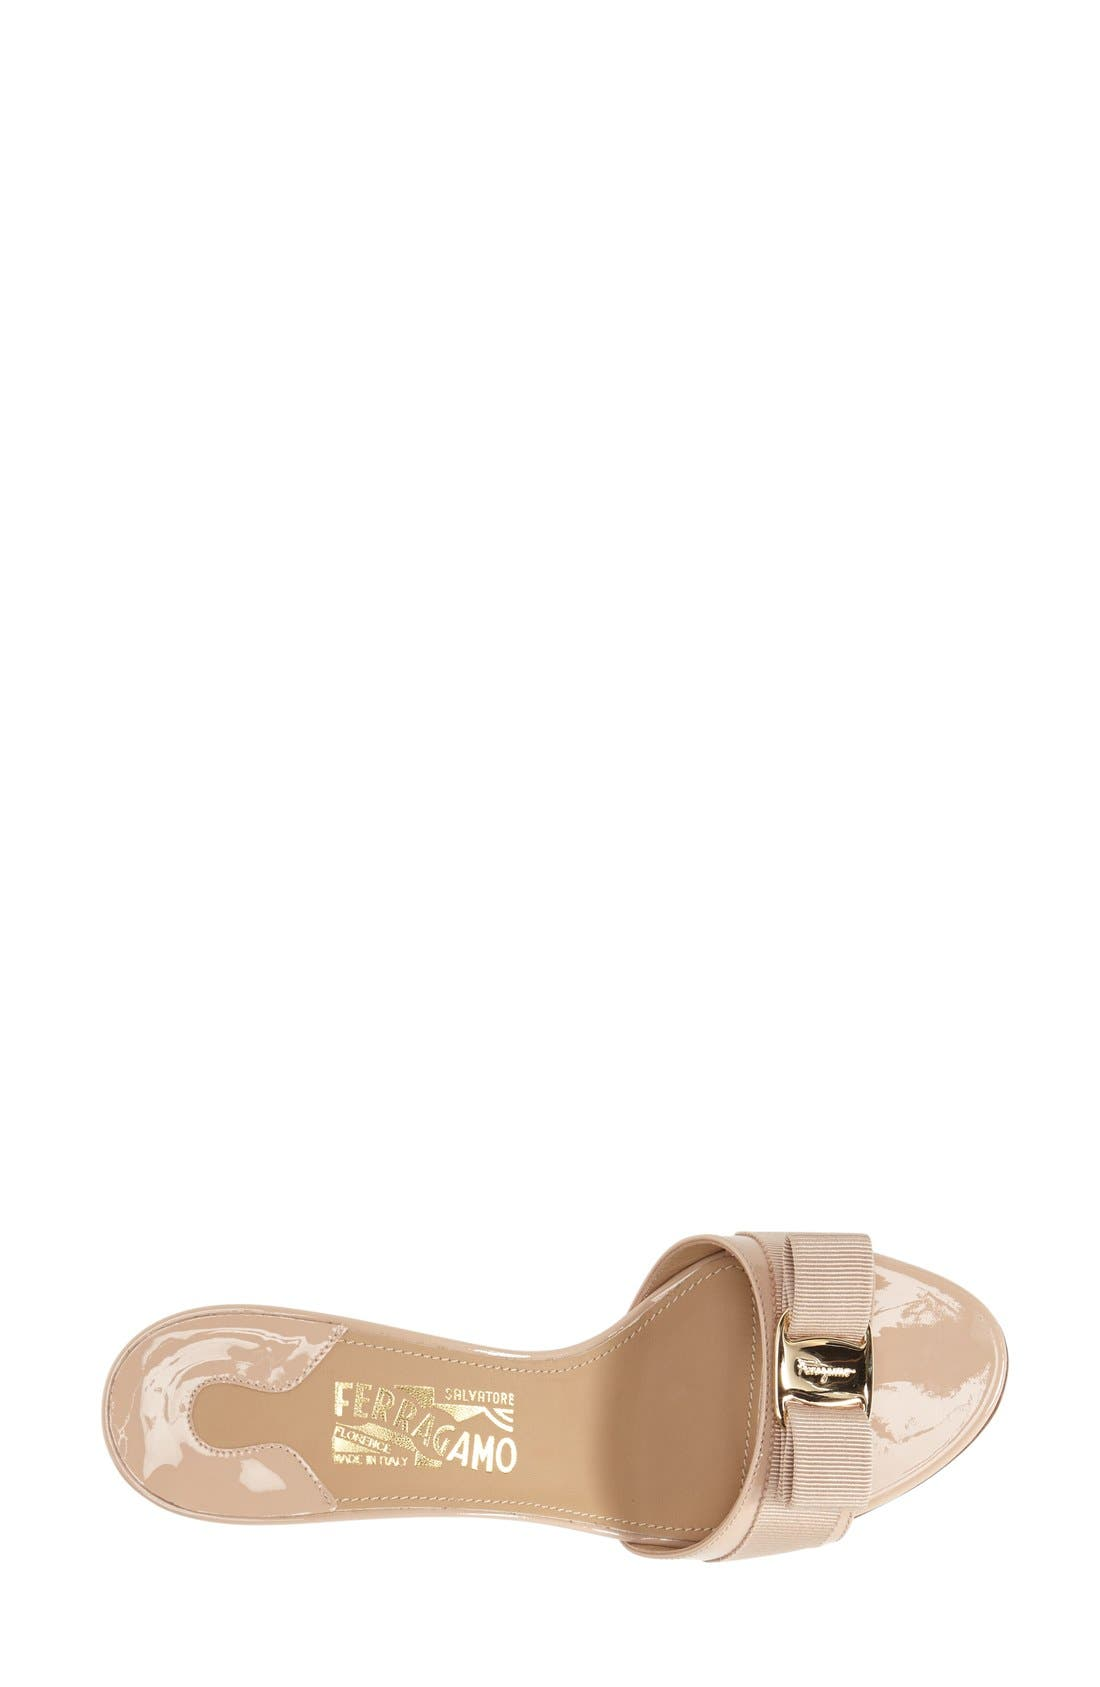 Alternate Image 3  - Salvatore Ferragamo 'Glory' Bow Trim Sandal